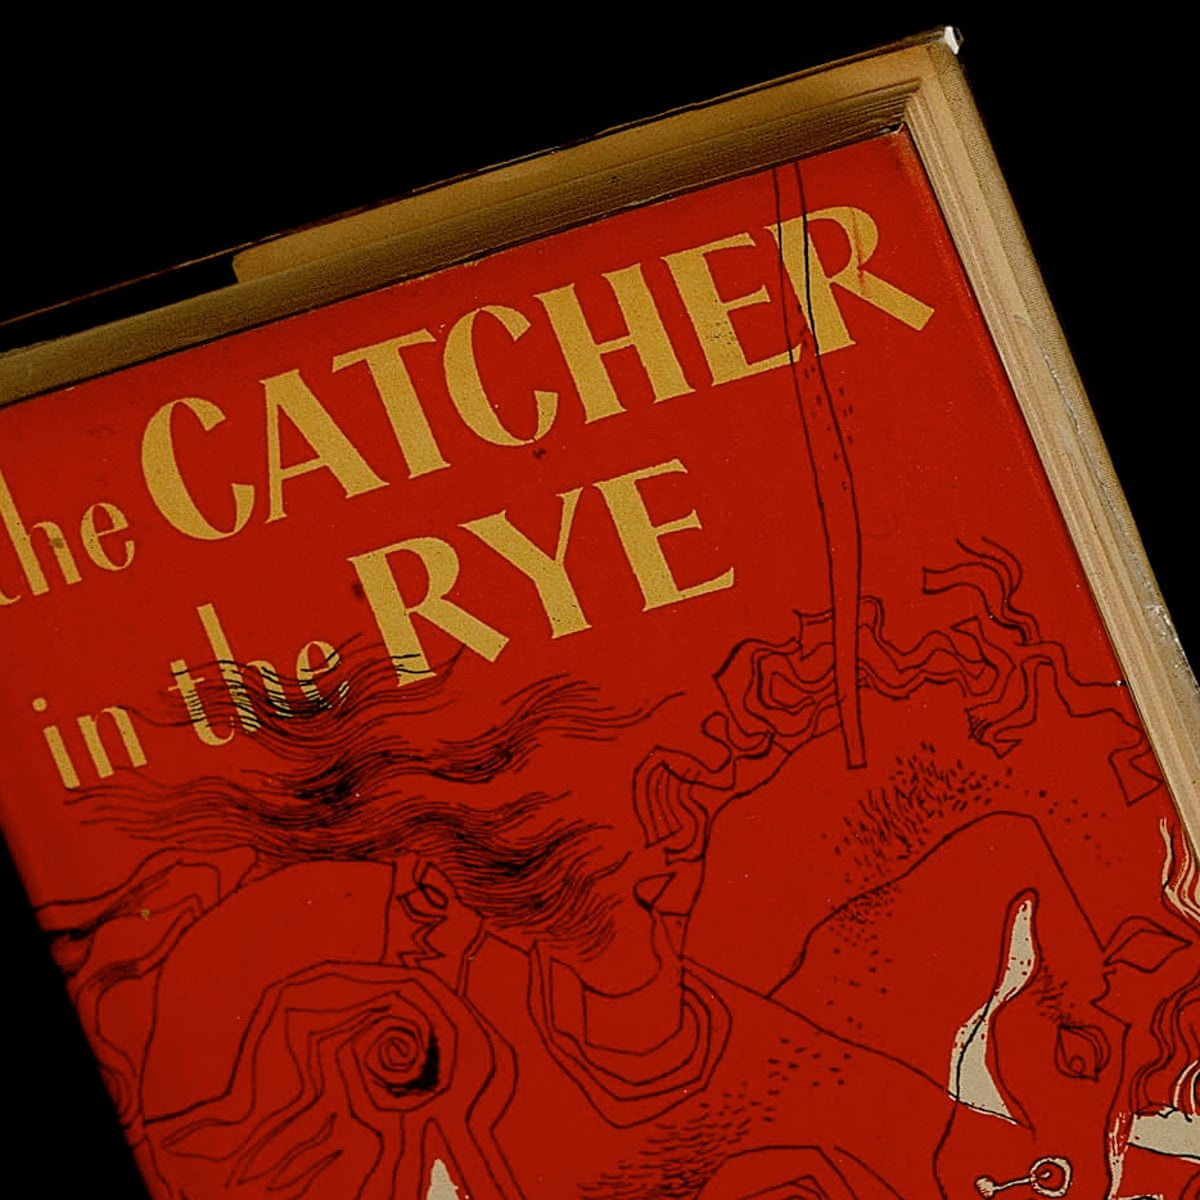 From Everyteen To Annoying Are Today S Young Readers Turning On The Catcher In The Rye Jd Salinger The Guardian